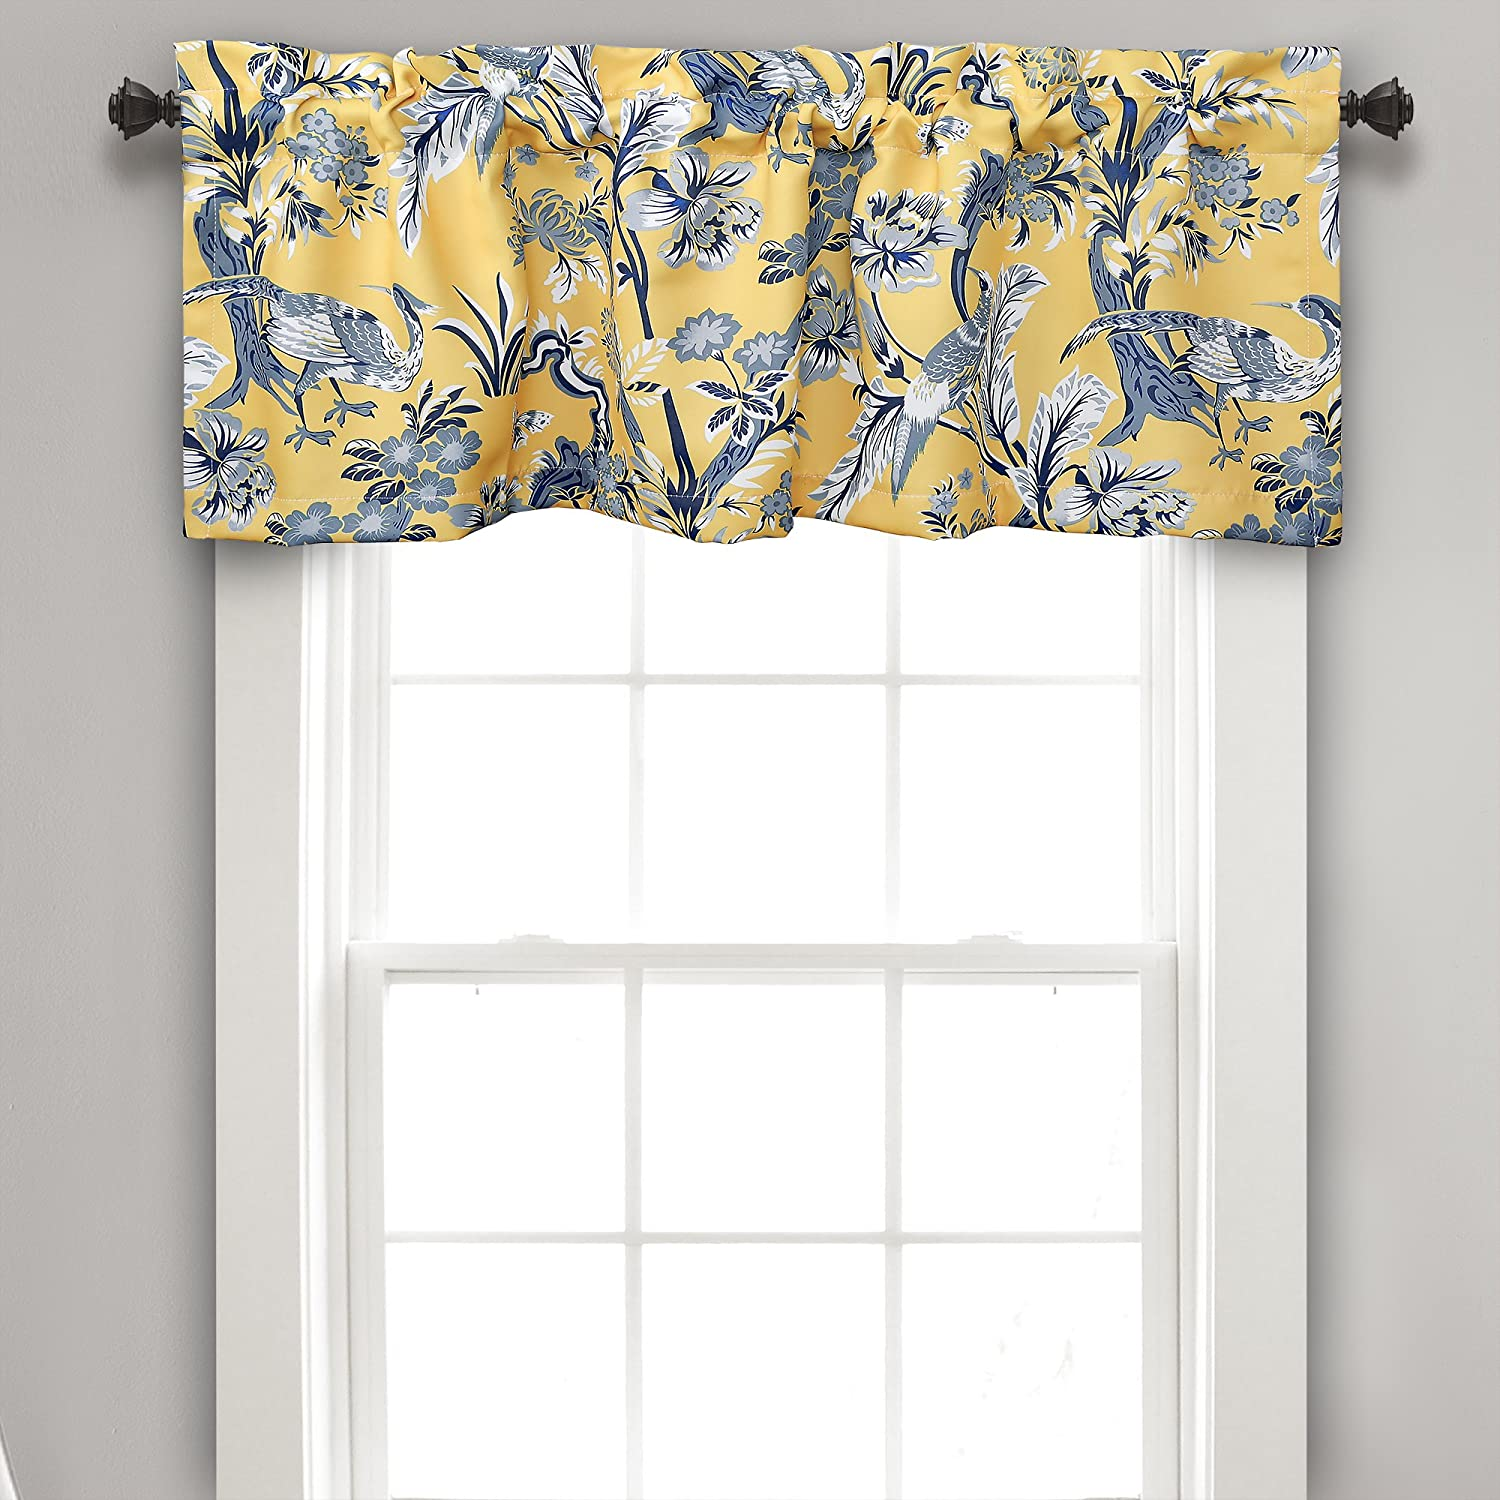 "Lush Decor Dolores Valance Bird Floral Print Single Curtain 18"" x 52"", Yellow and Blue"